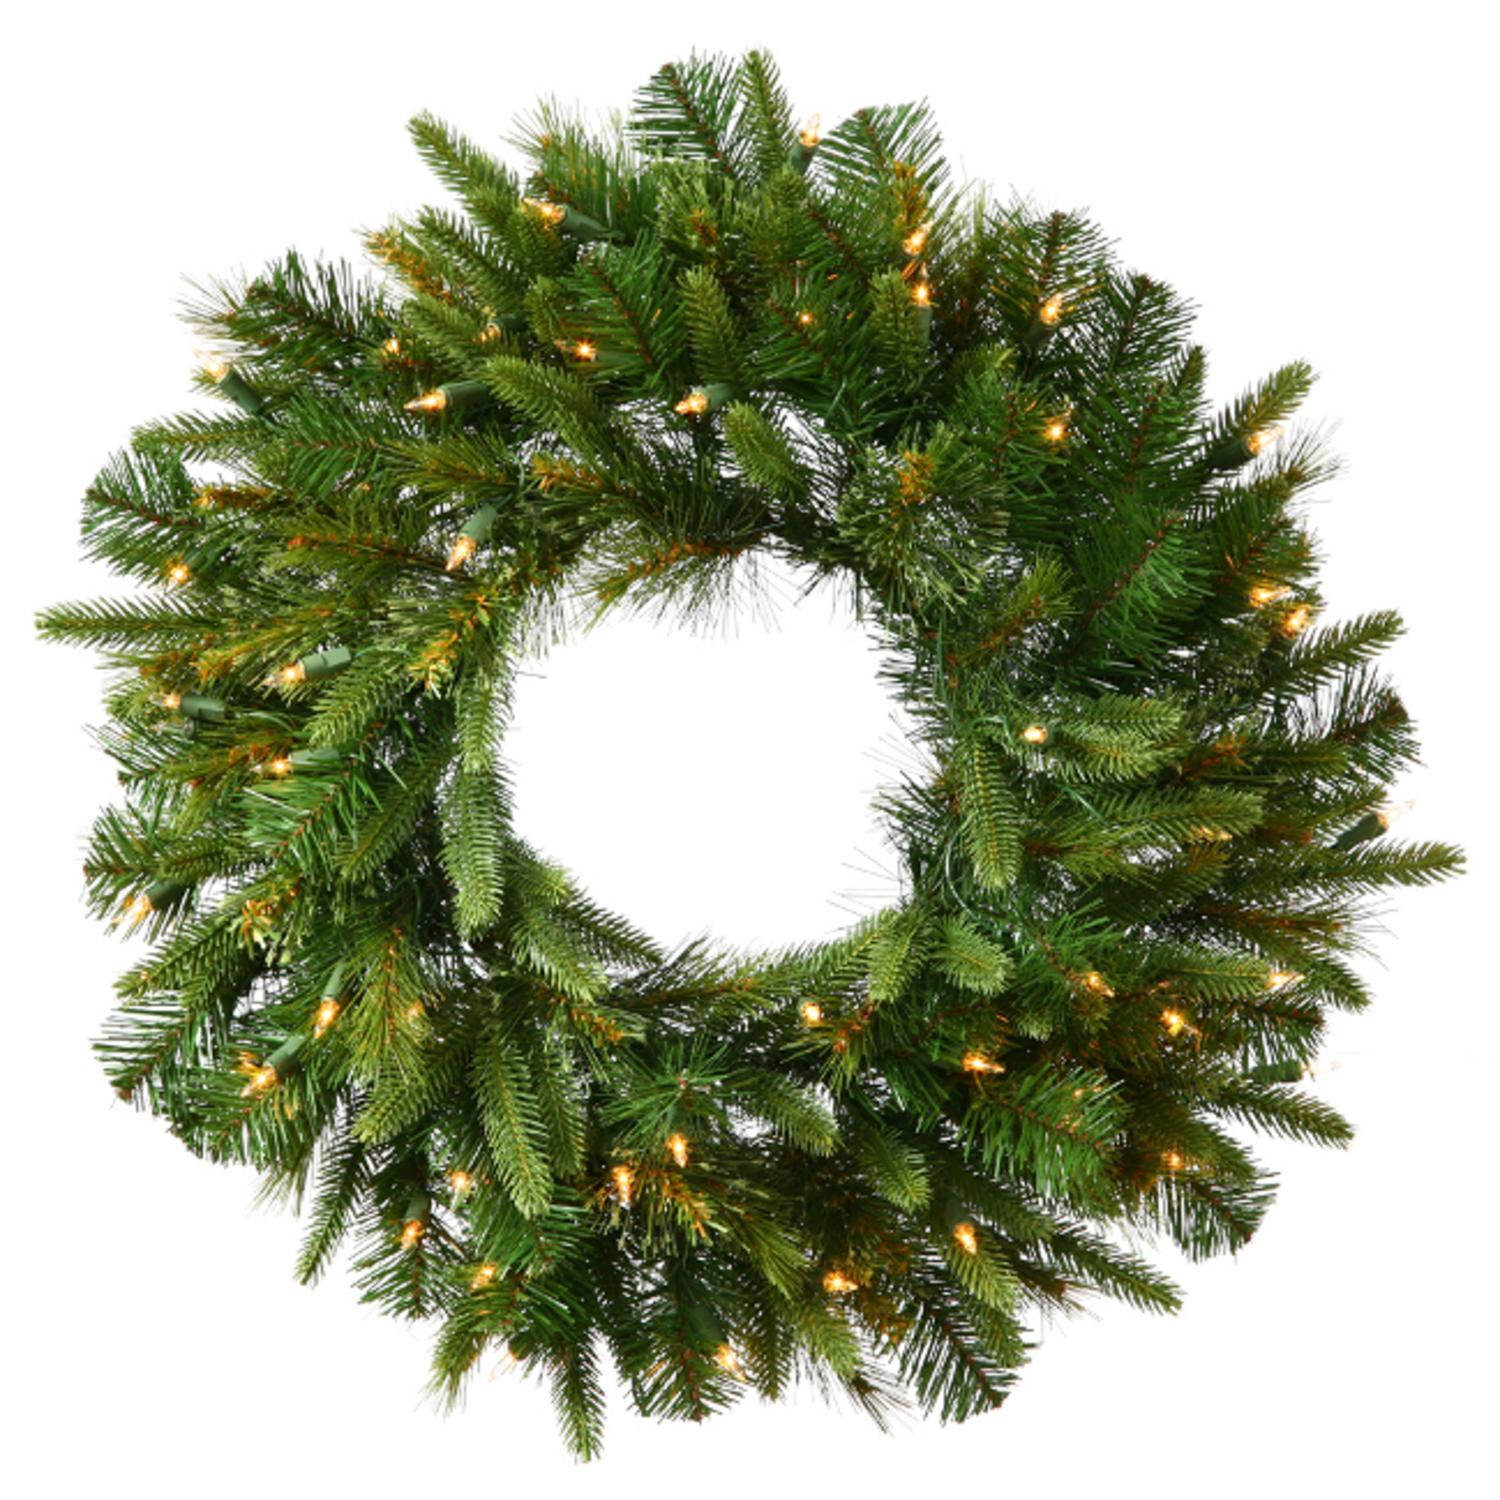 6' Pre-Lit Commercial Cashmere Artificial Christmas Wreath - Clear Lights